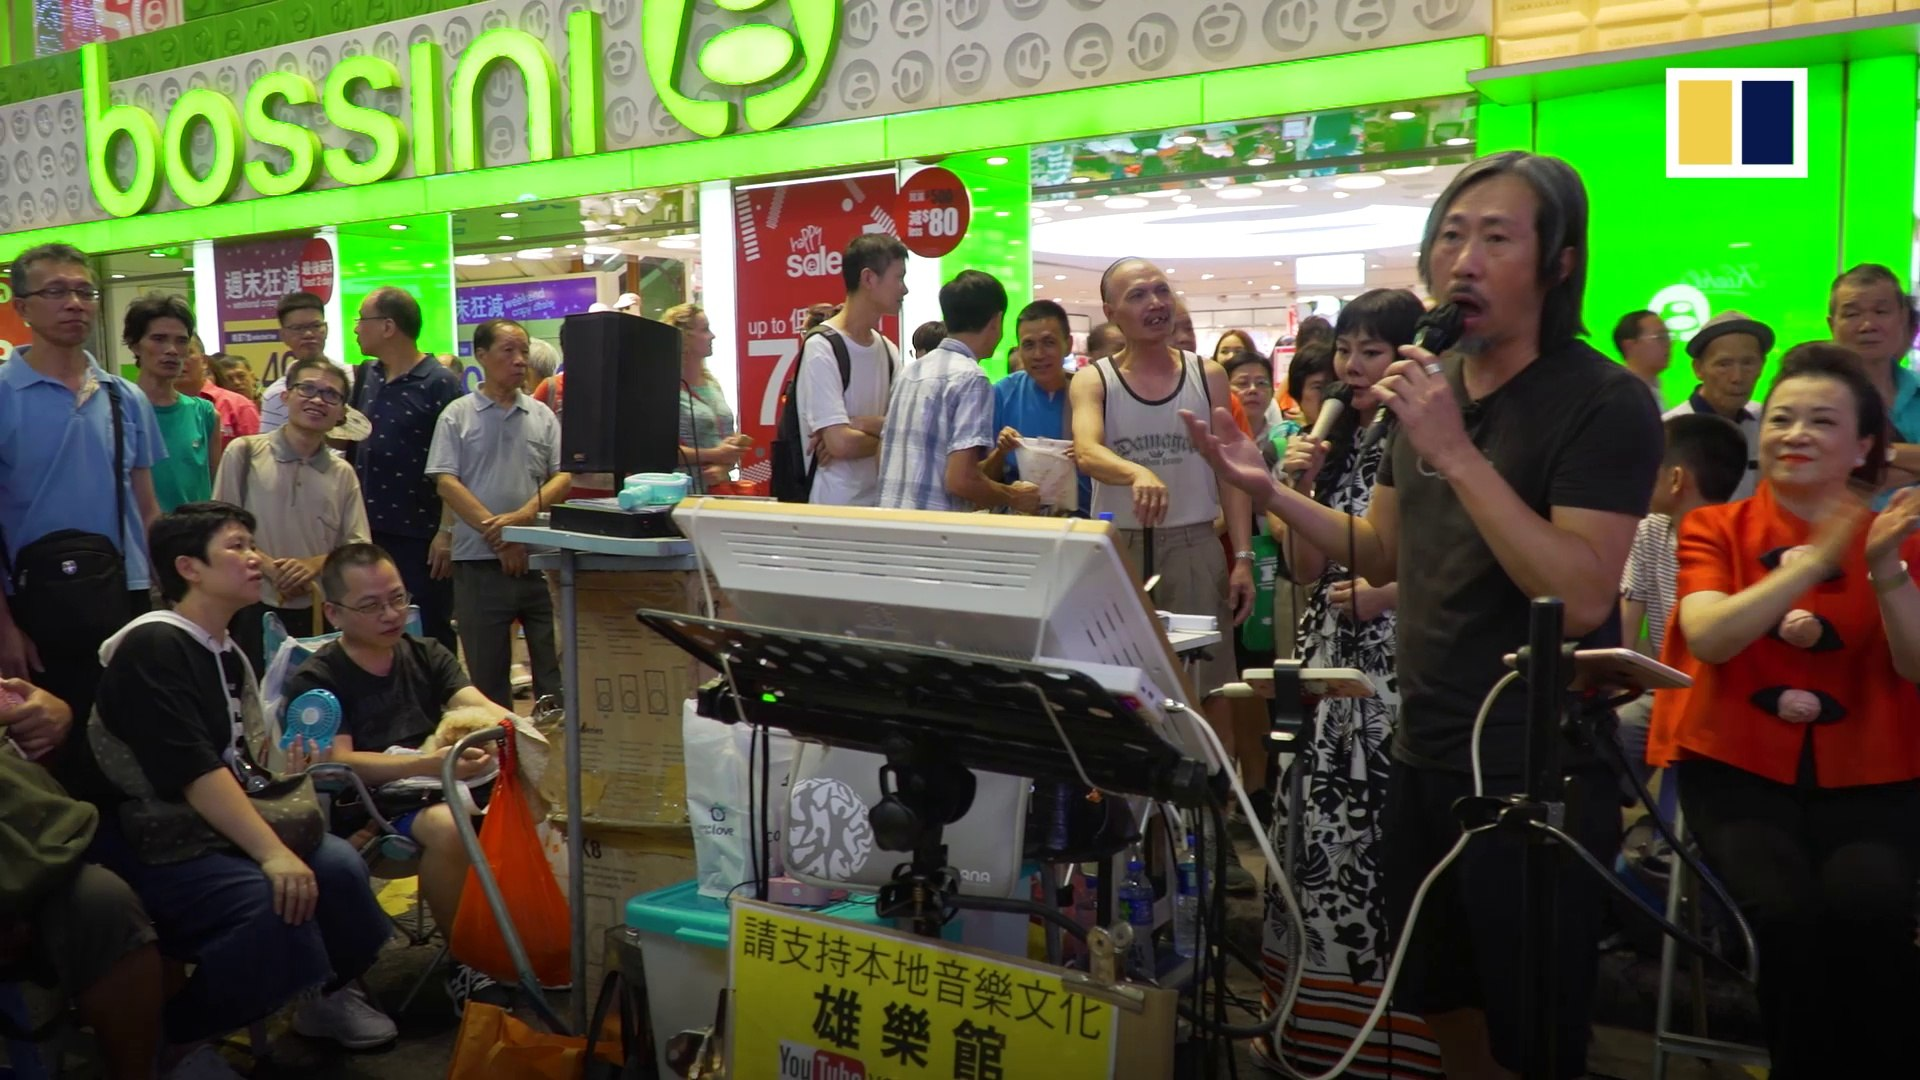 The Last Performance - Street musicians in Hong Kong will not be silenced